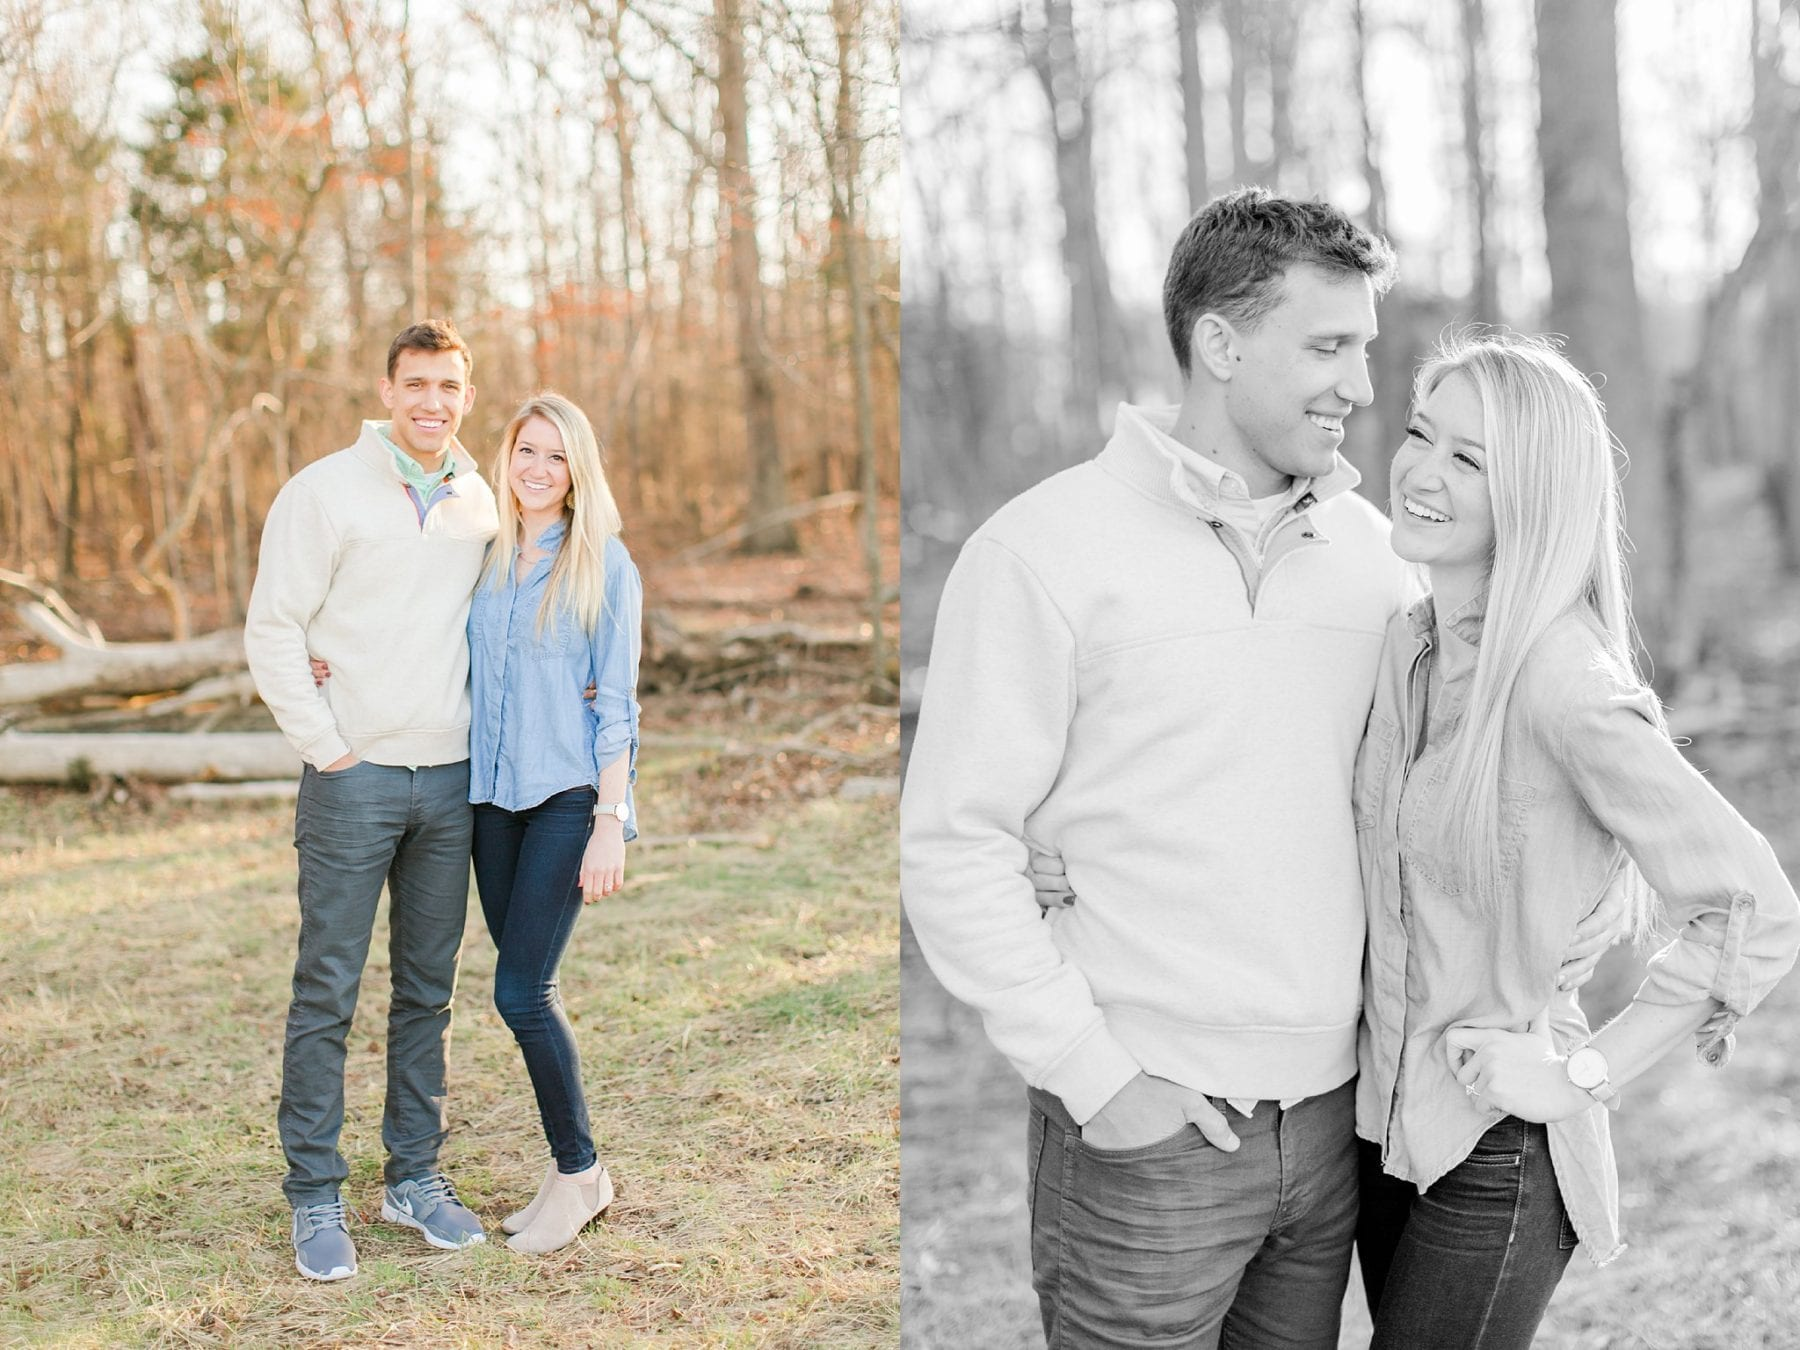 Manassas Battlefield Engagement Session Virginia Wedding Photographer Danielle & Charlie Megan Kelsey Photography-5052.jpg